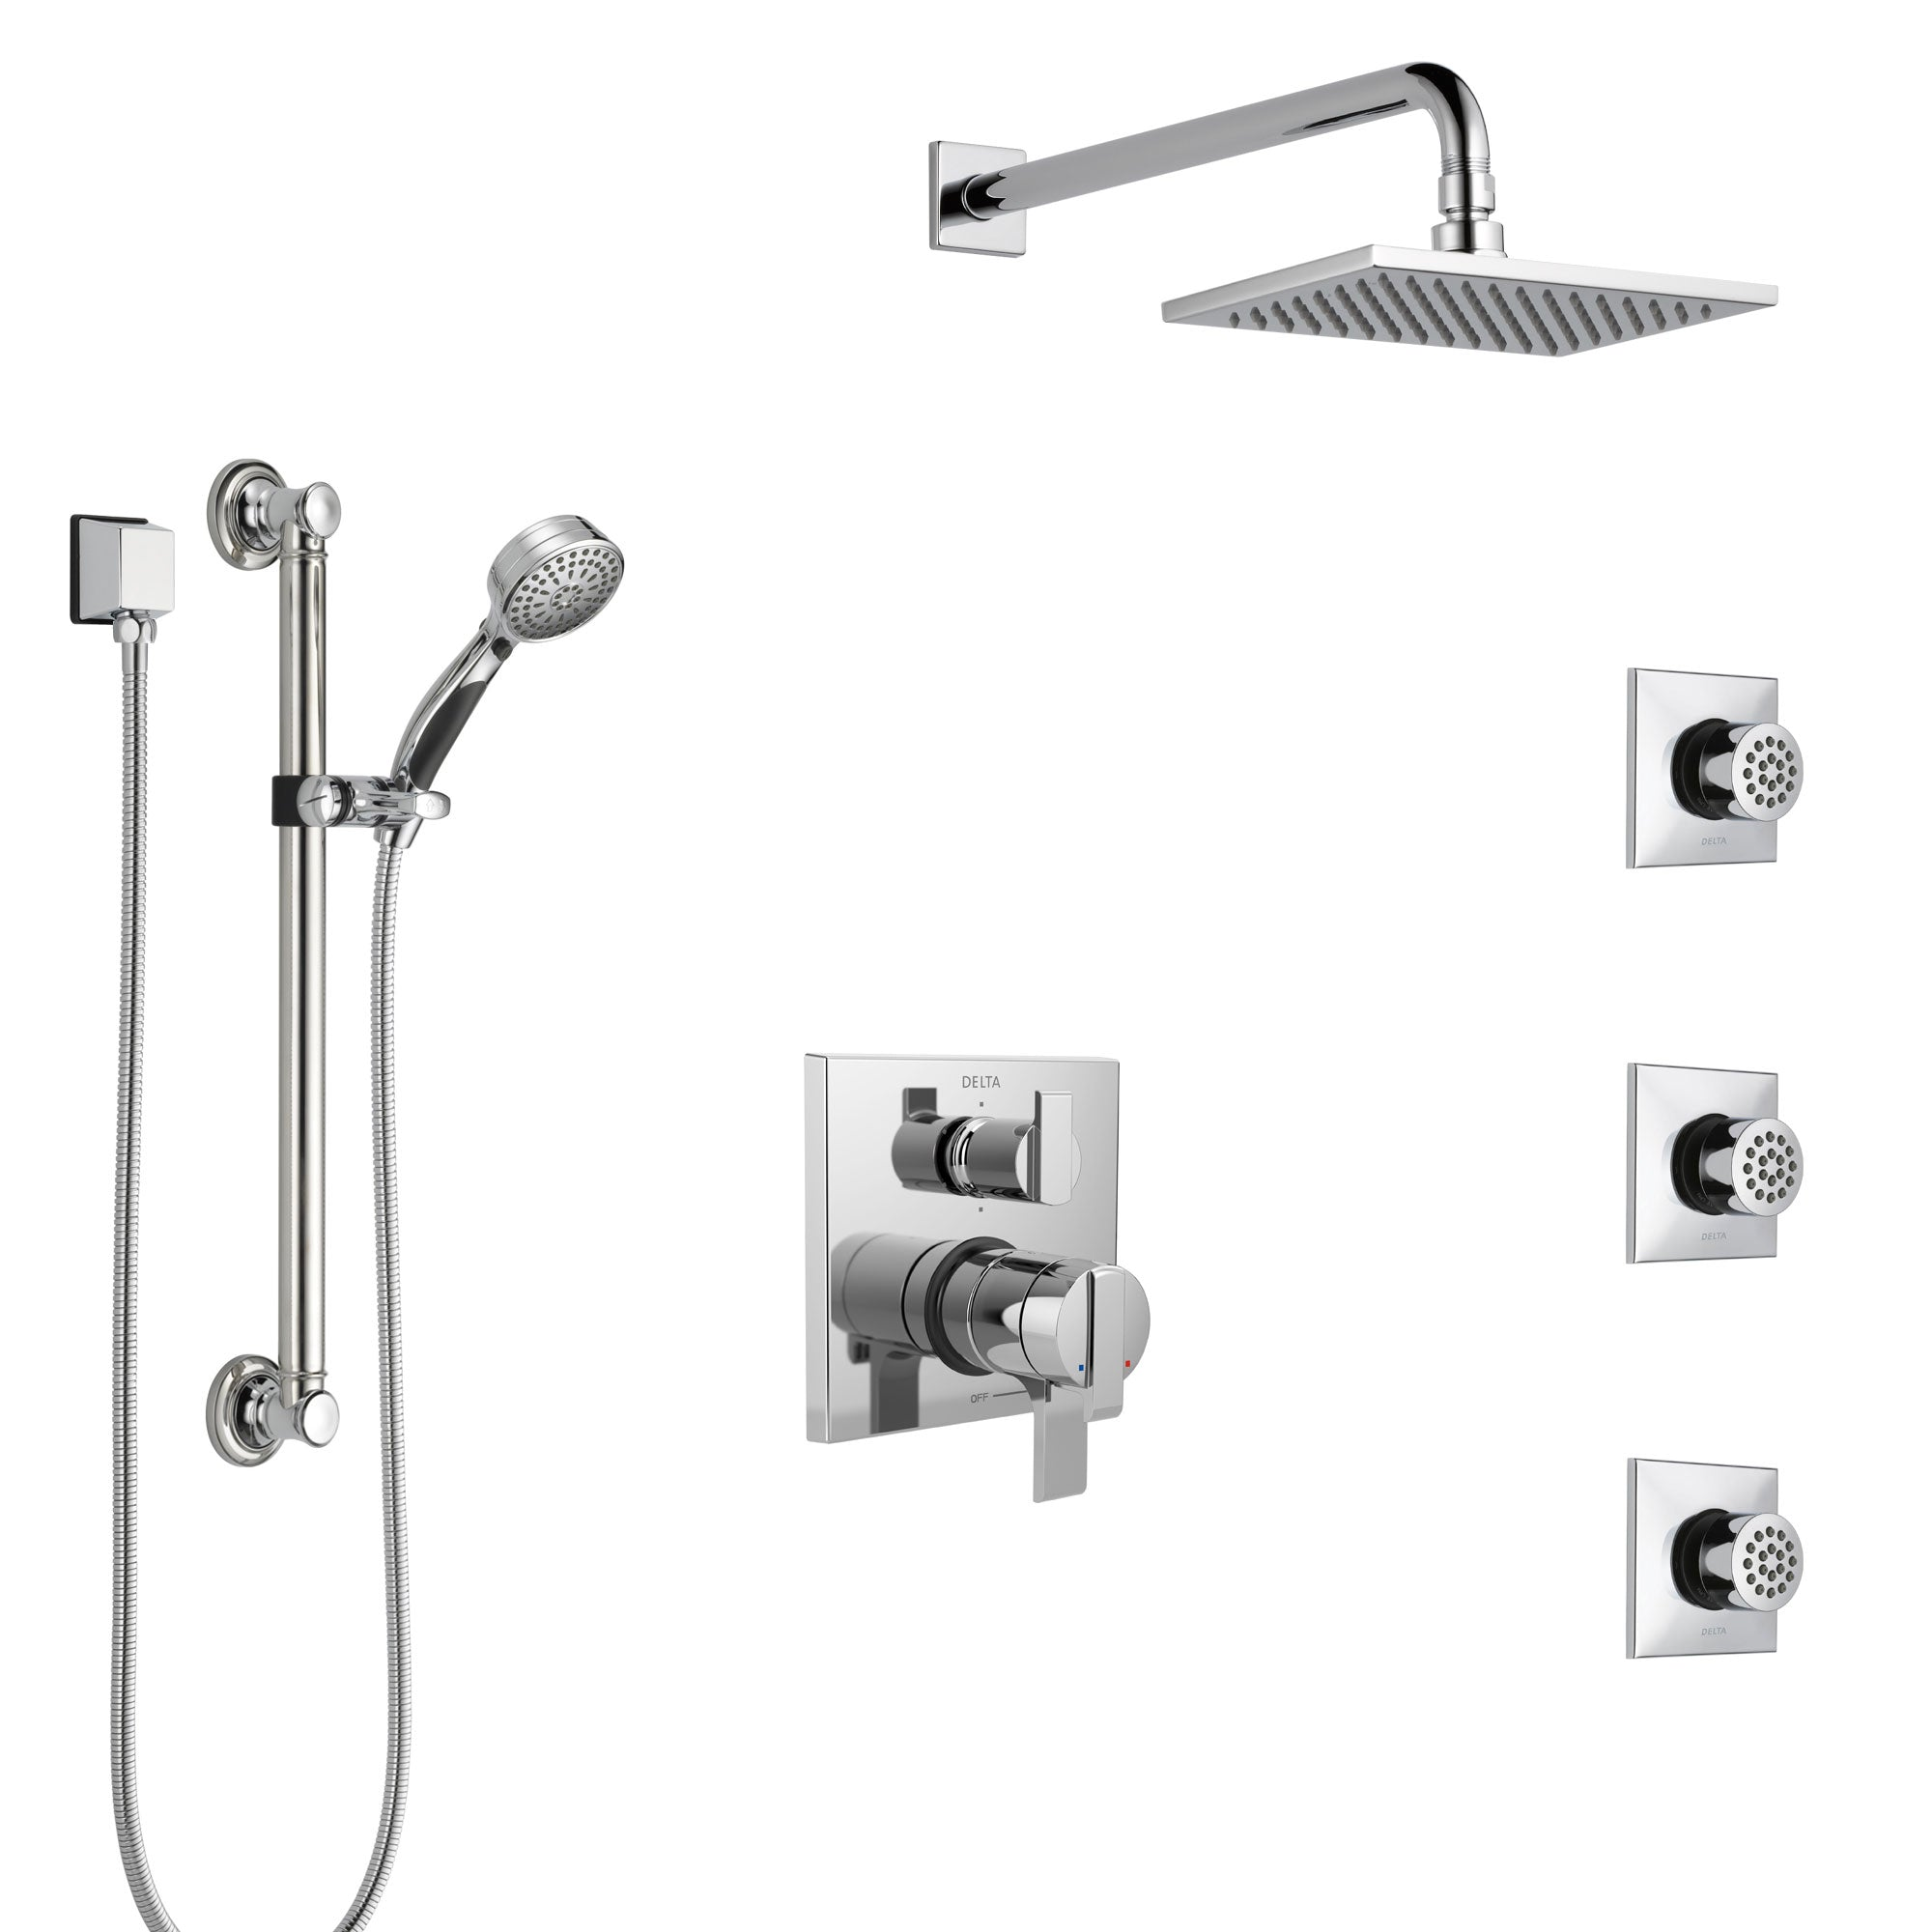 Delta Ara Chrome Shower System with Dual Control Handle, Integrated Diverter, Showerhead, 3 Body Sprays, and Hand Shower with Grab Bar SS279672